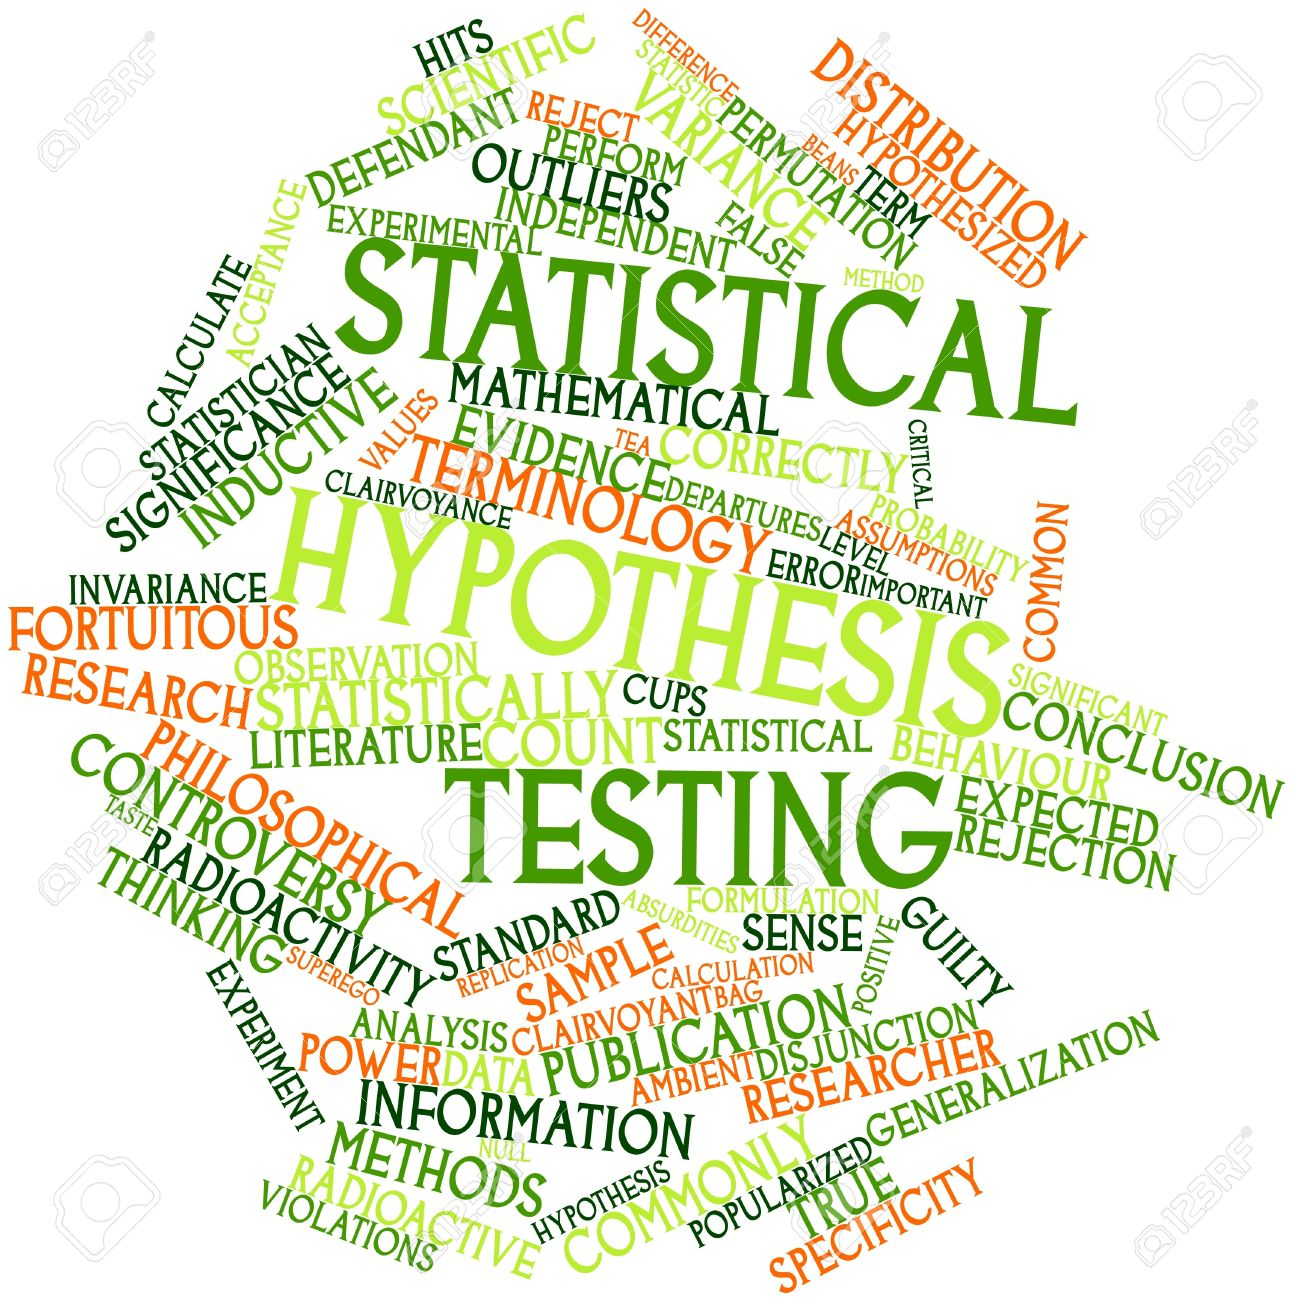 Basic Concept Of Hypothesis Testing Null Hypothesis And Alternate Hypothesis Madhuresh Kumar